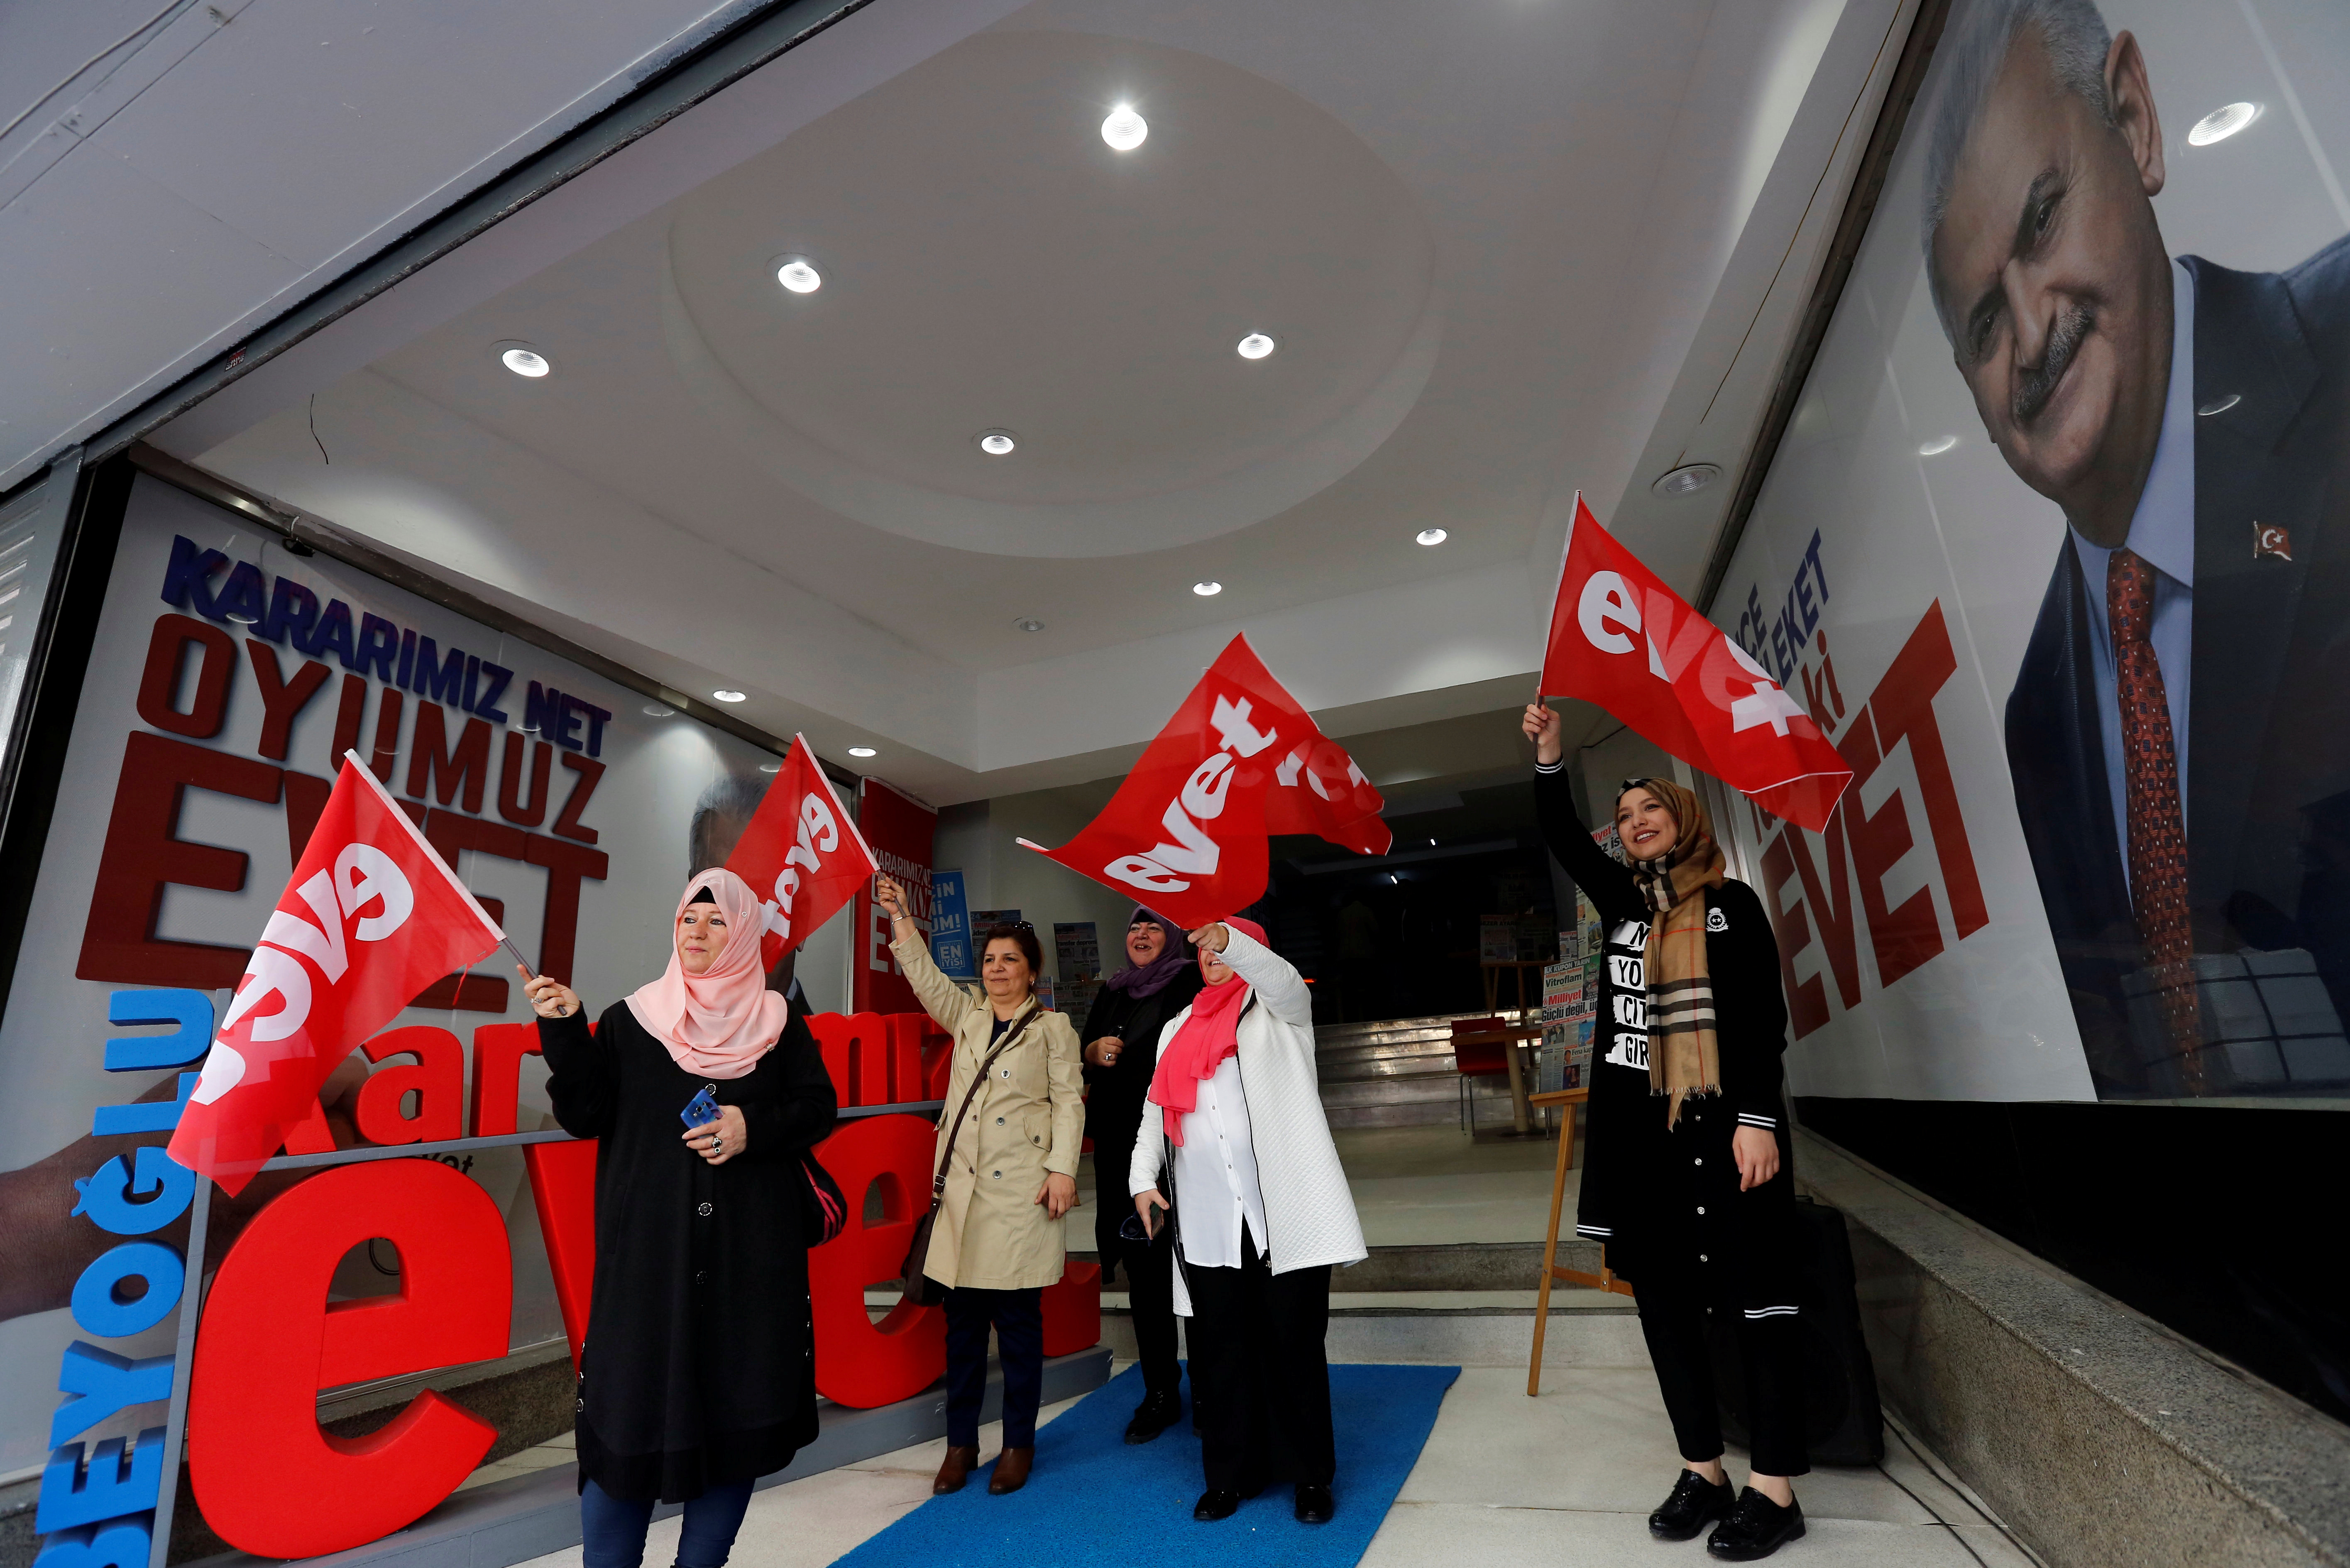 """Women wave """"Yes"""" flags at a campaign office of the ruling AK Party"""